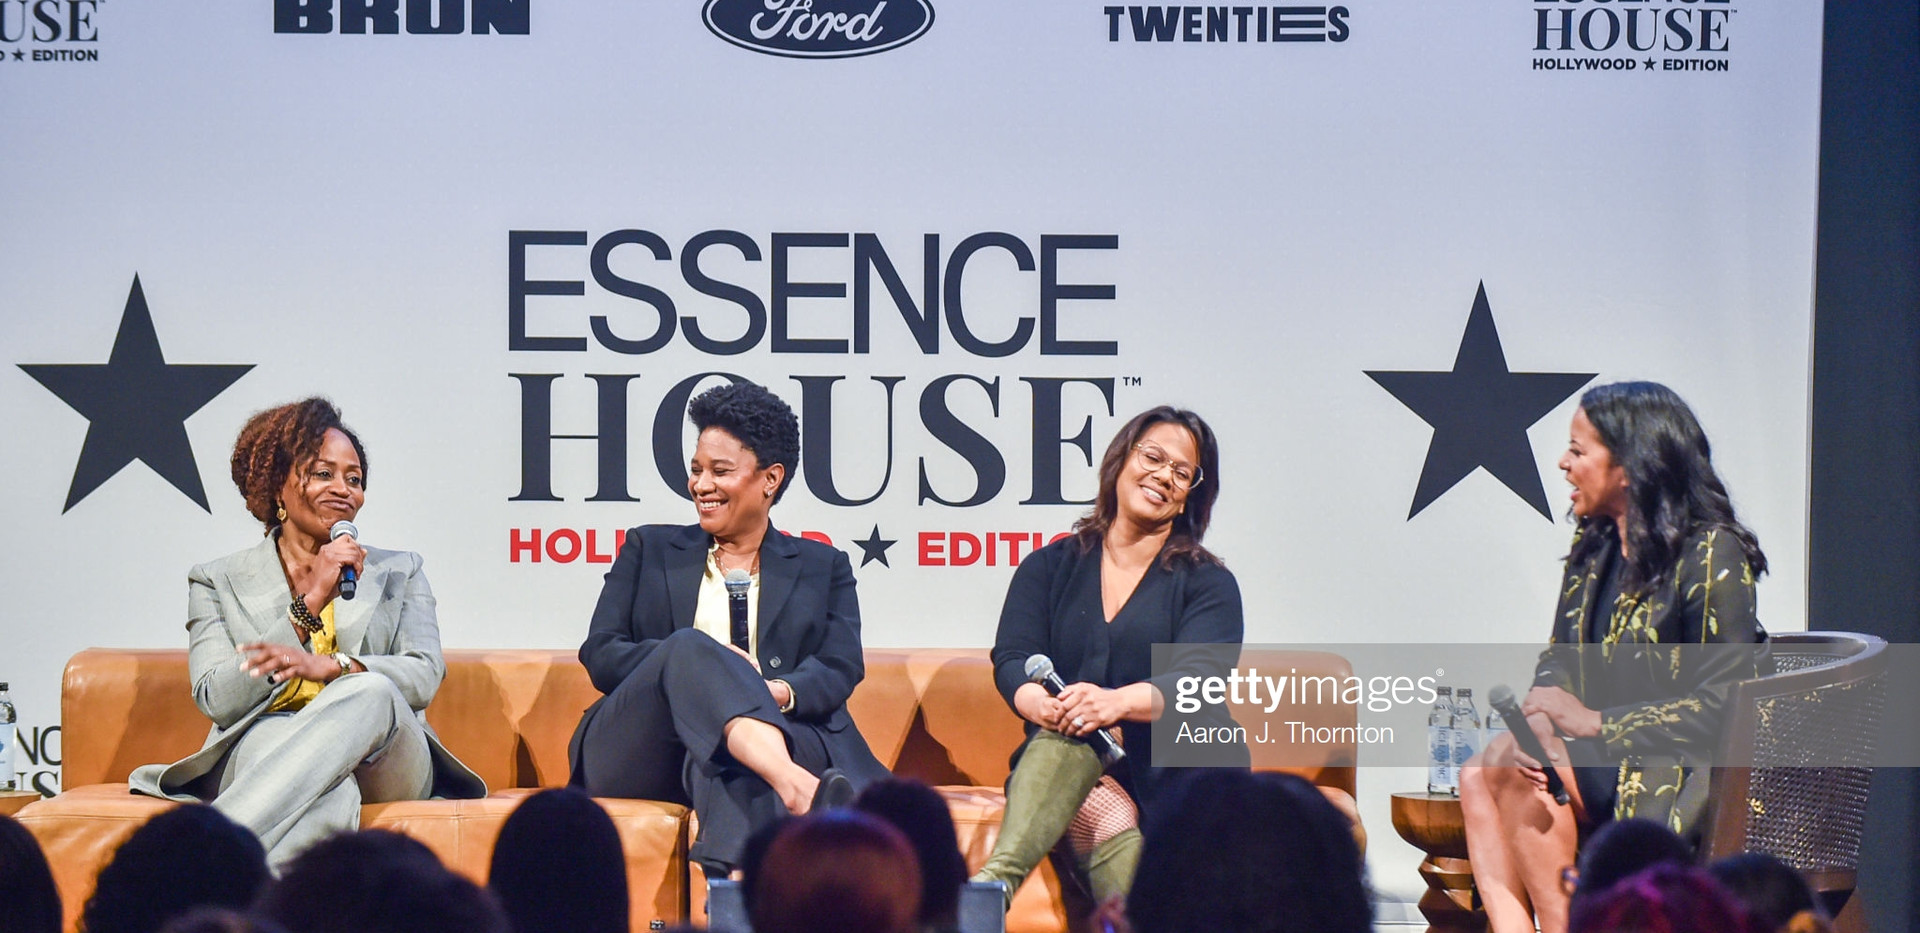 Pearlena Igbokwe, Vanessa Morrison, Tina Perry, and Michelle Ebanks